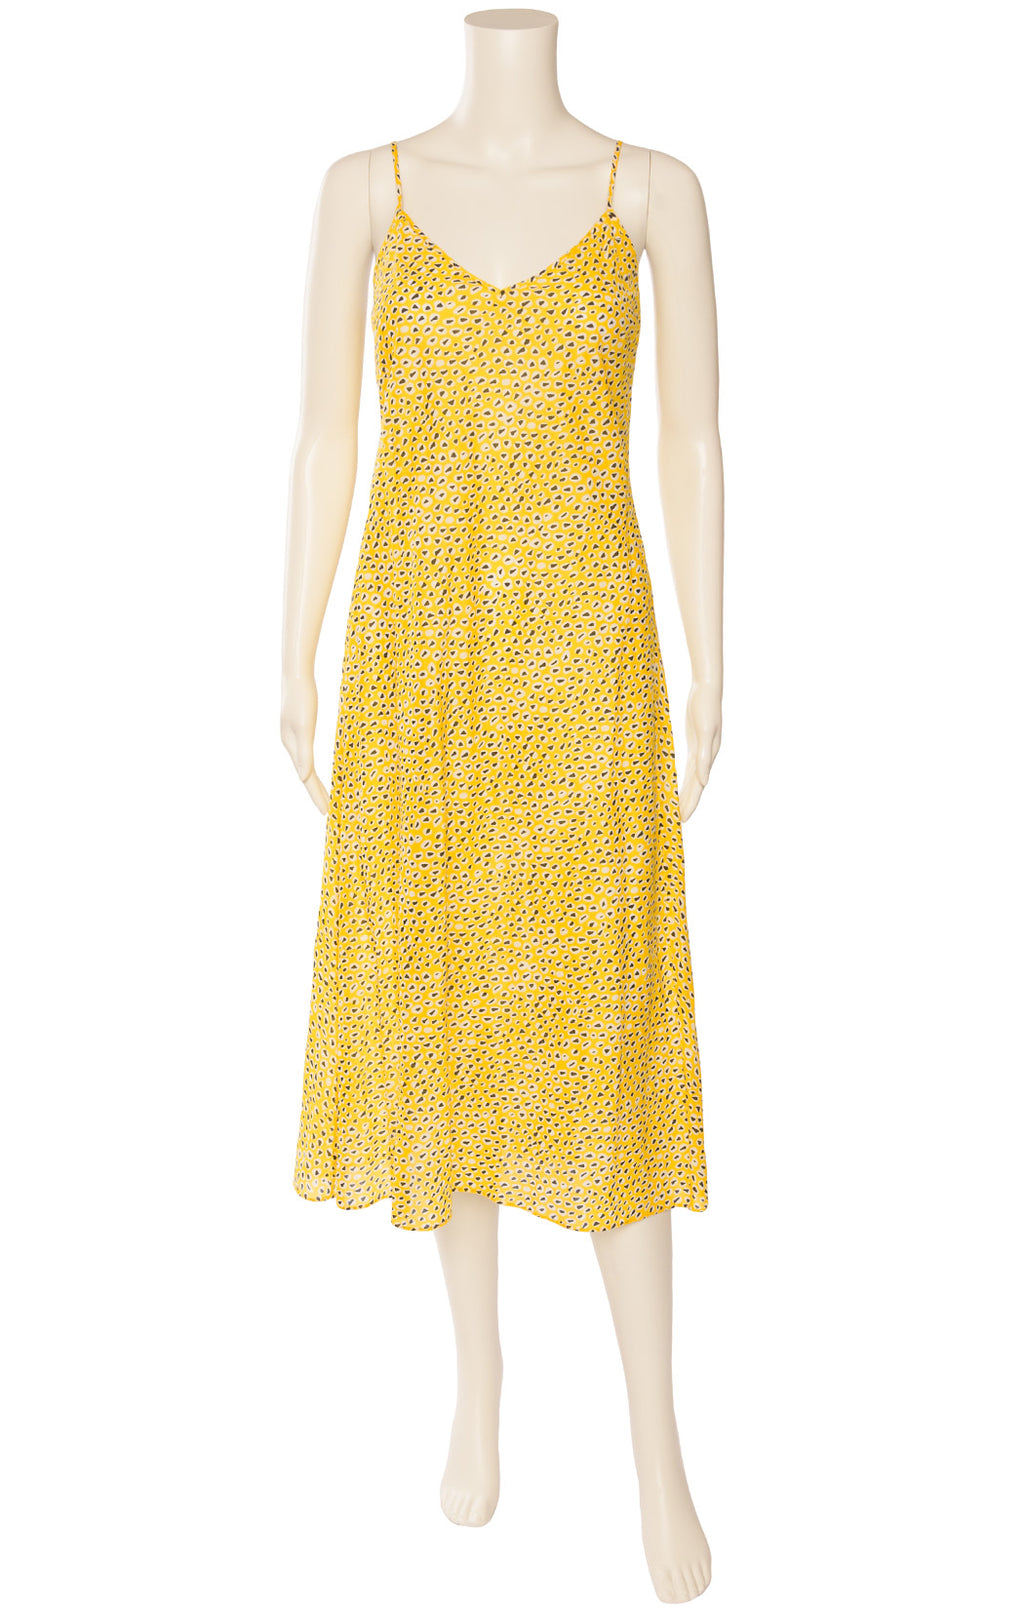 Front view of DIANE VON FURSTENBERG  Dress Size: 8